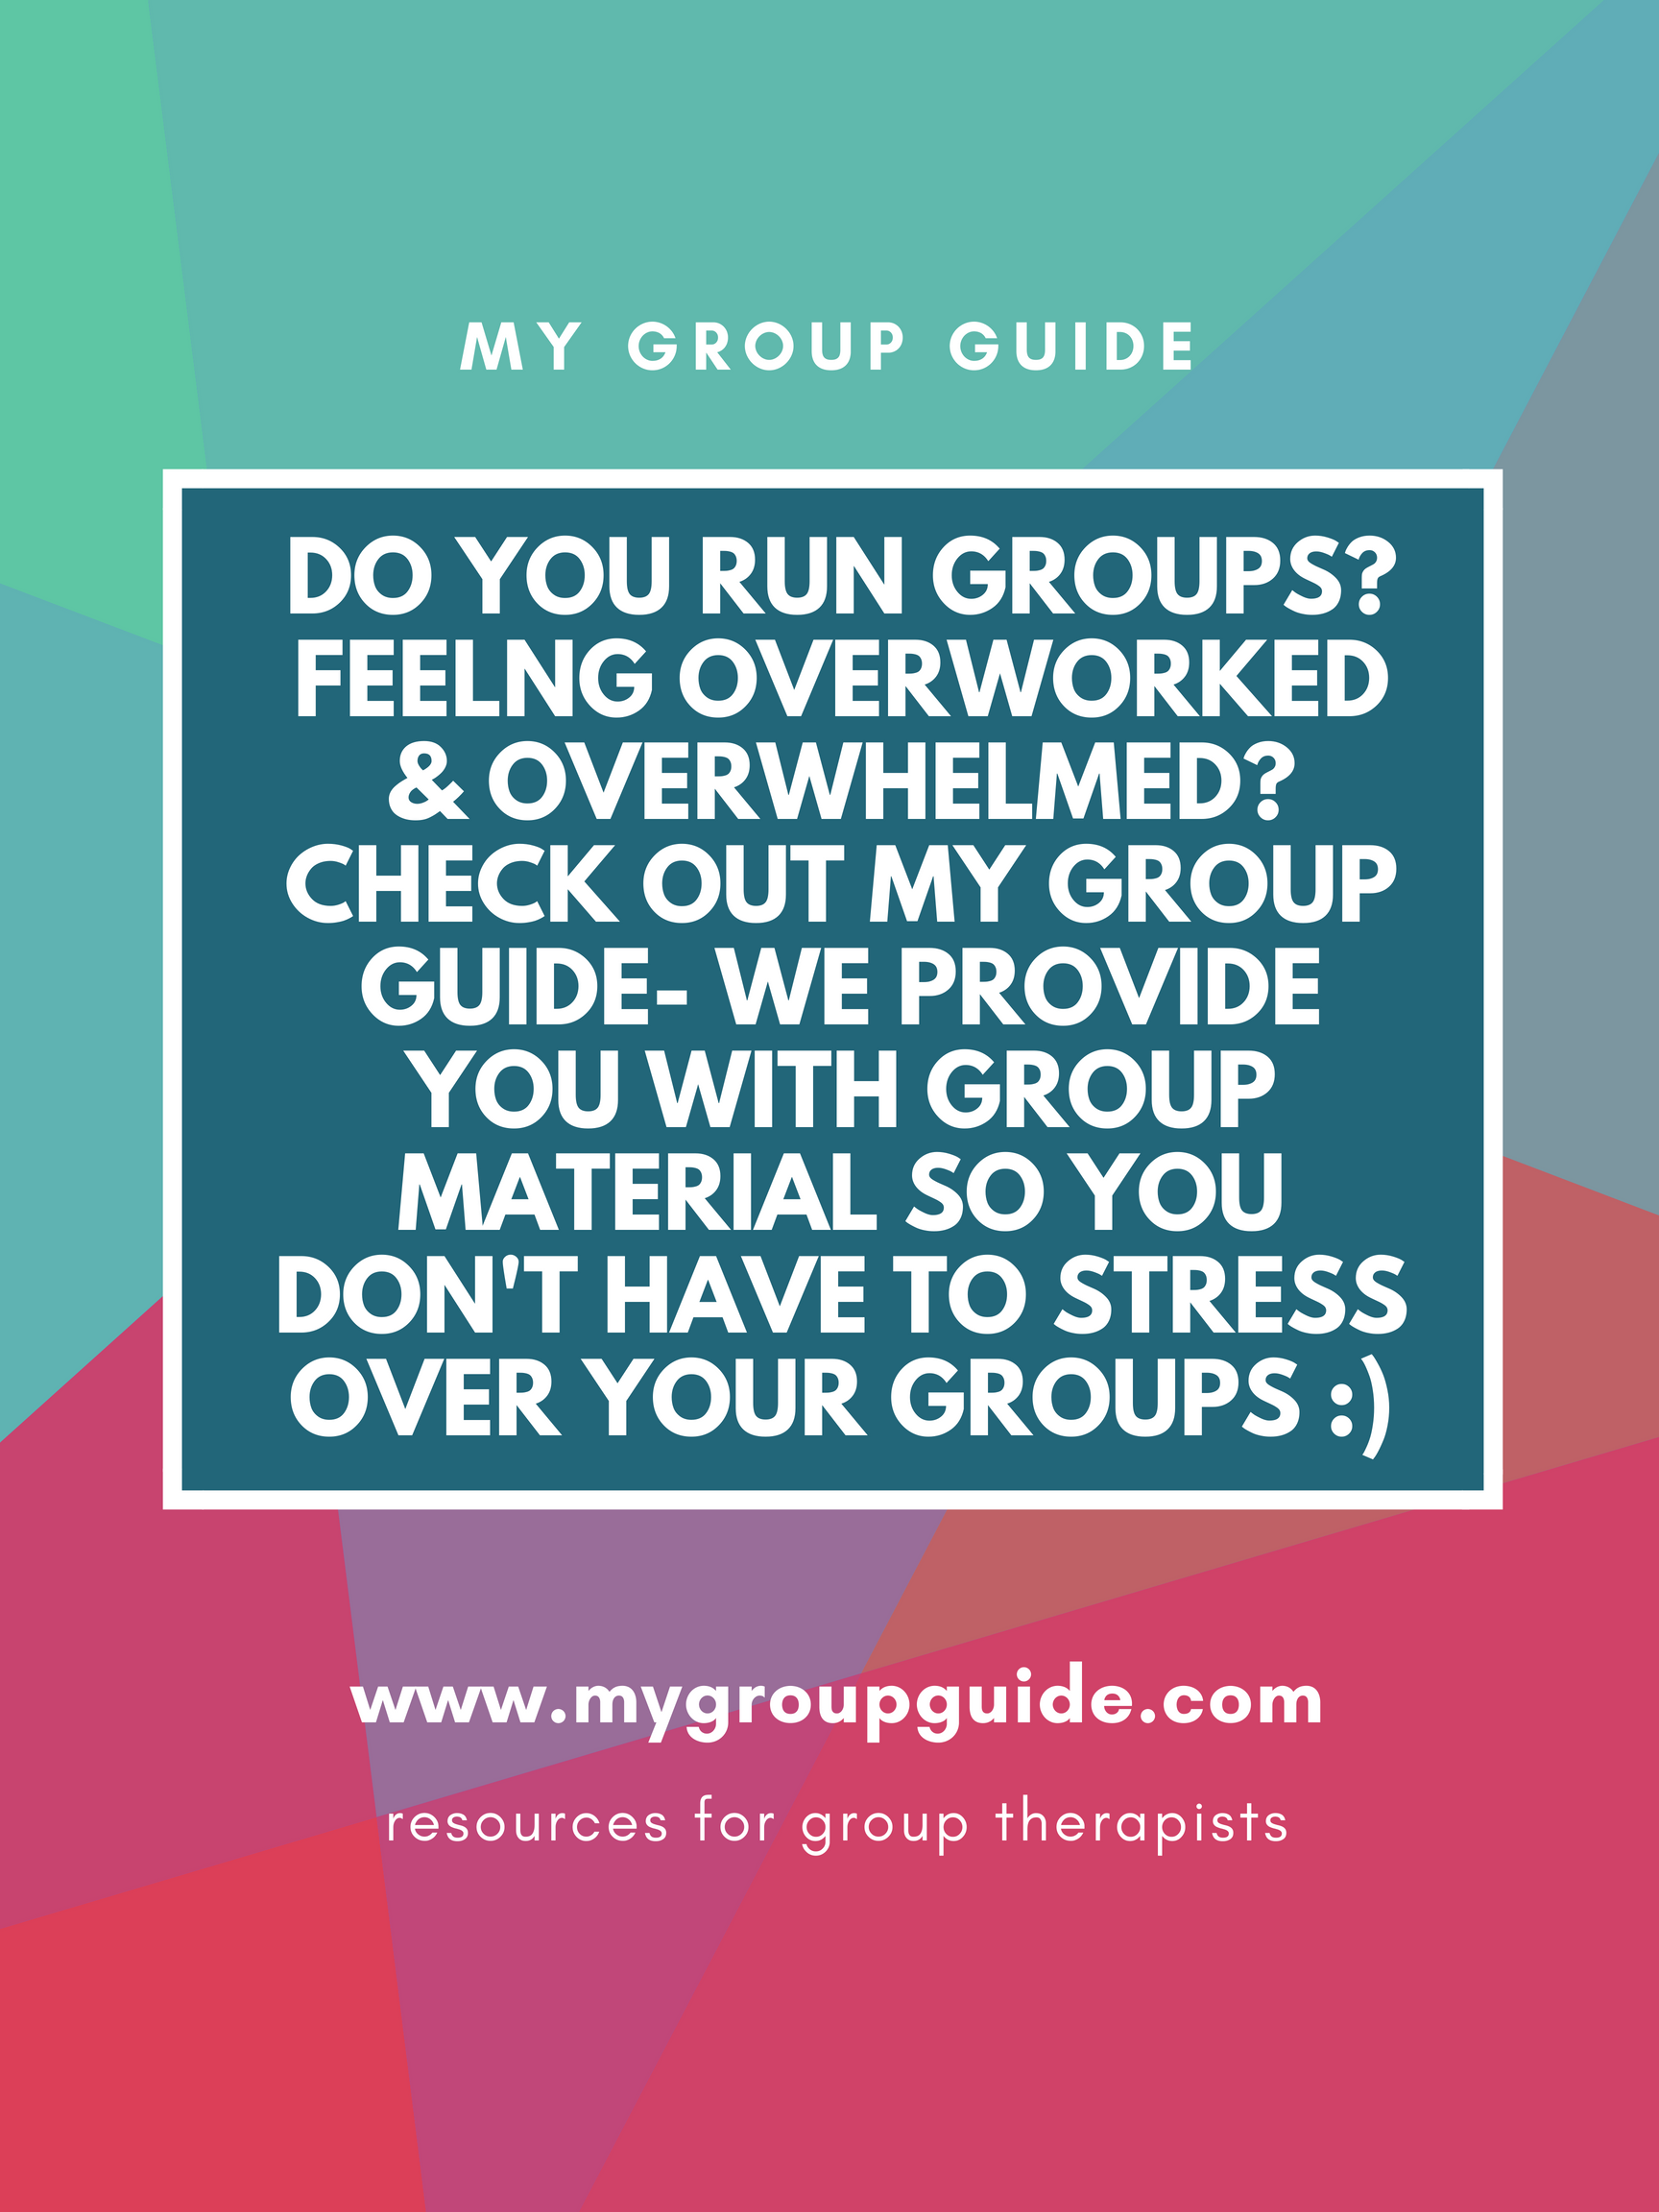 My Group Guide Learn More About Our Therapy Resources